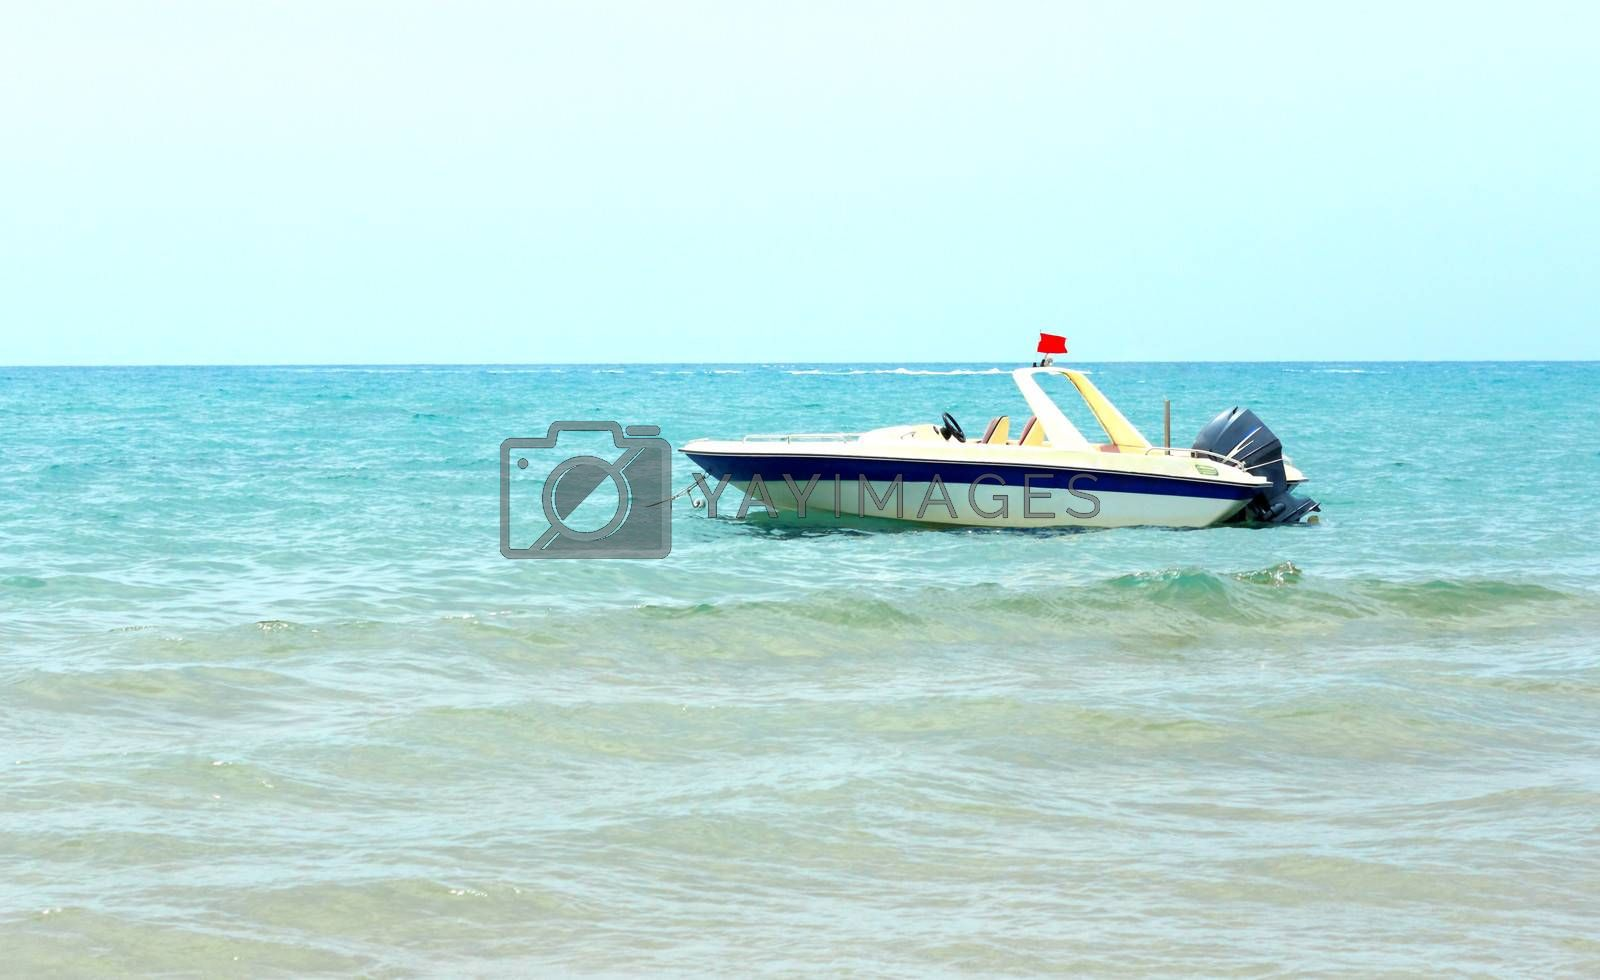 The small boat for sea trips in the coastal waters near the beach at the resort.